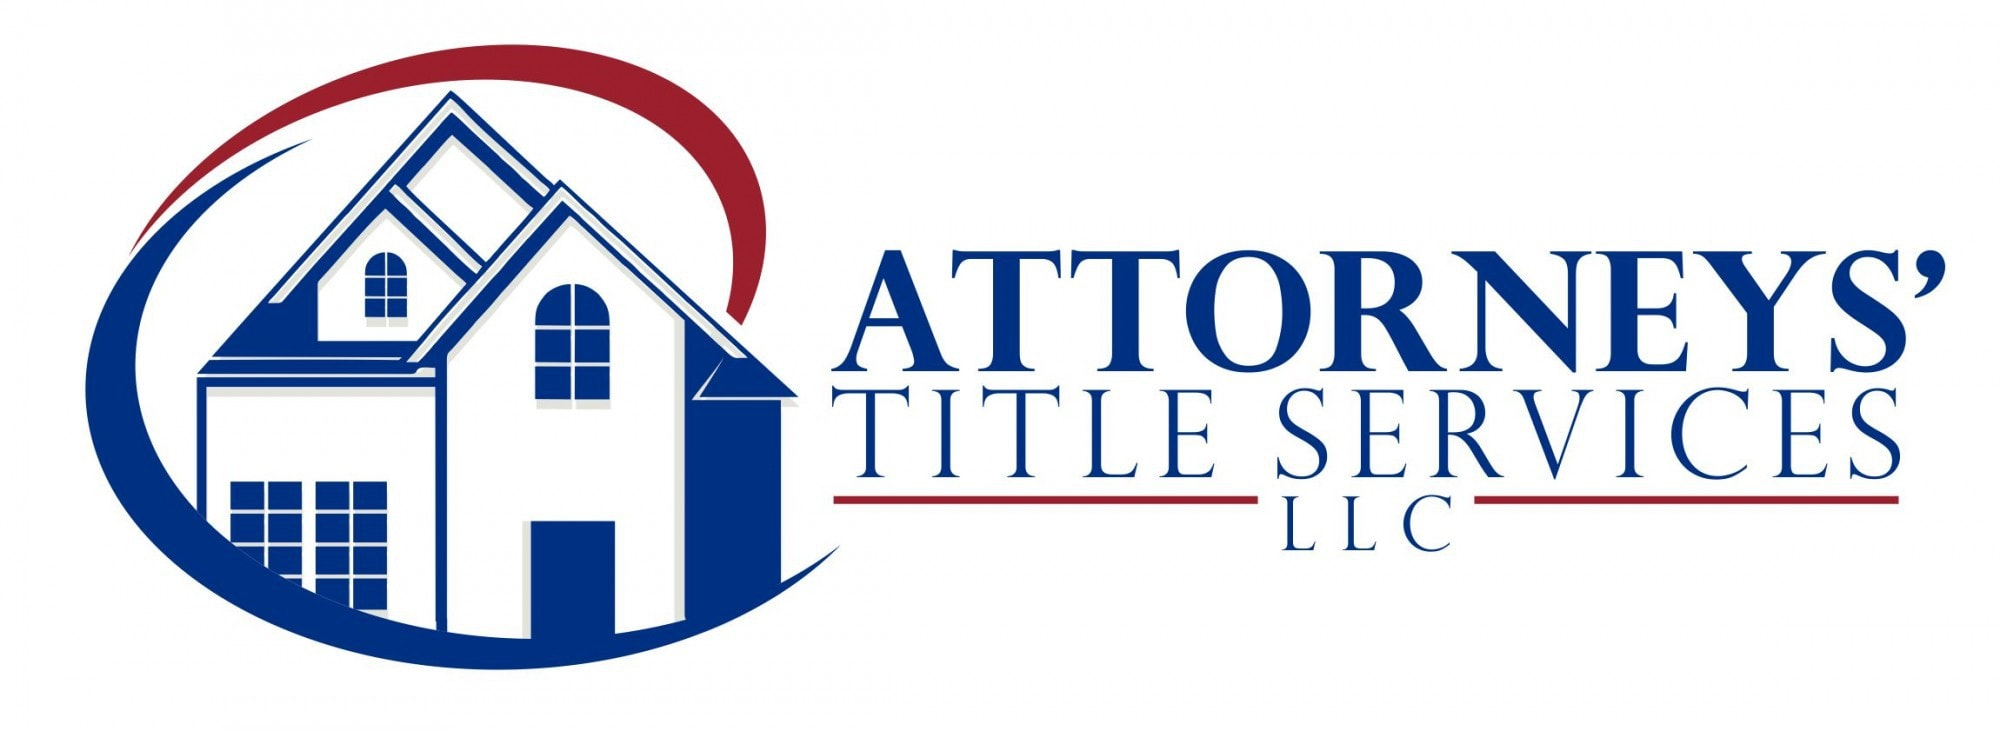 Attorneys Title Services